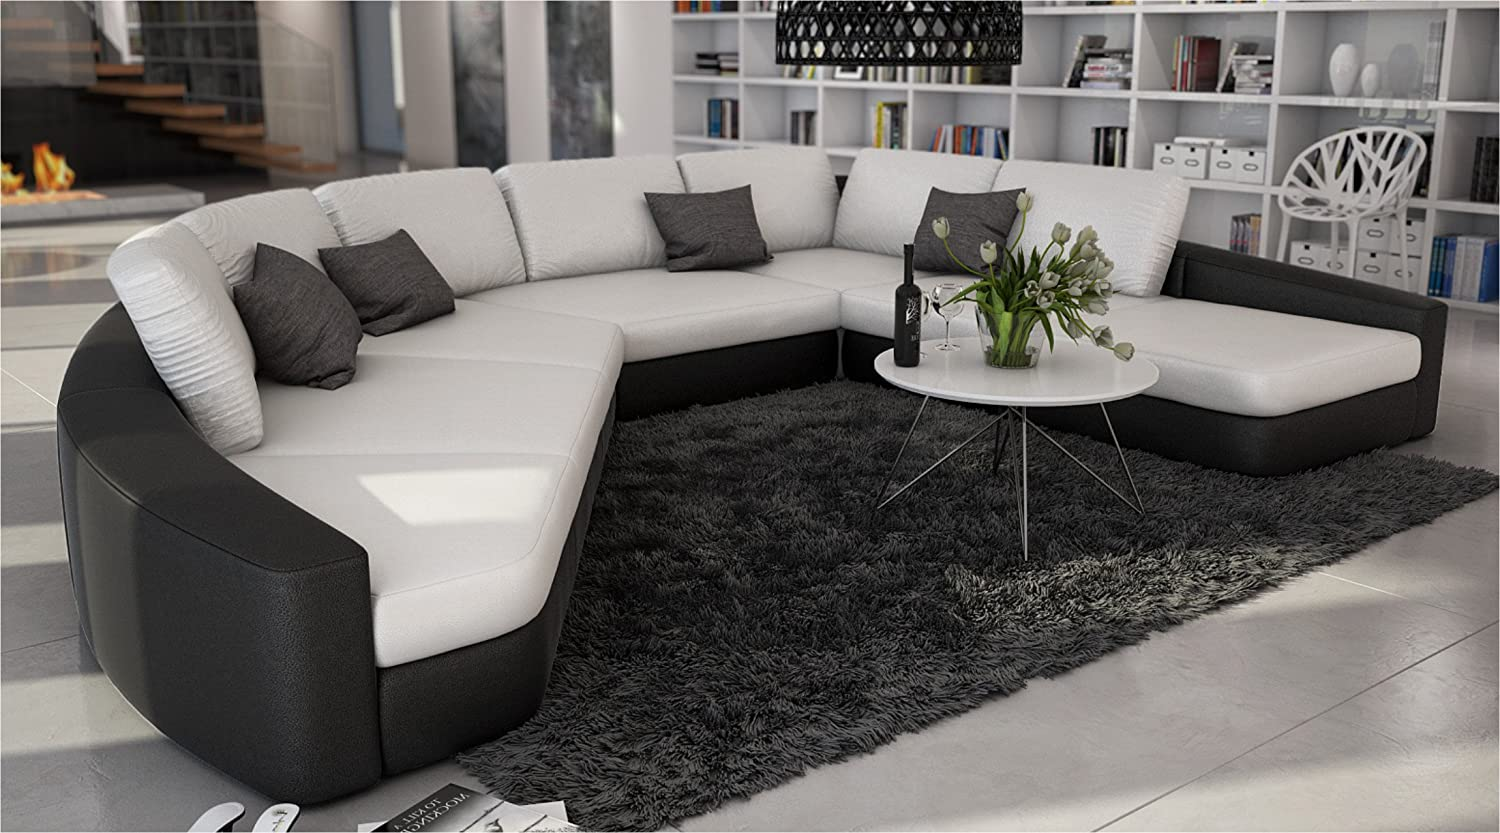 Sofa modern günstig  SAM® Sofa Garnitur in weiß - schwarz DOMENCIA designed by Ricardo ...